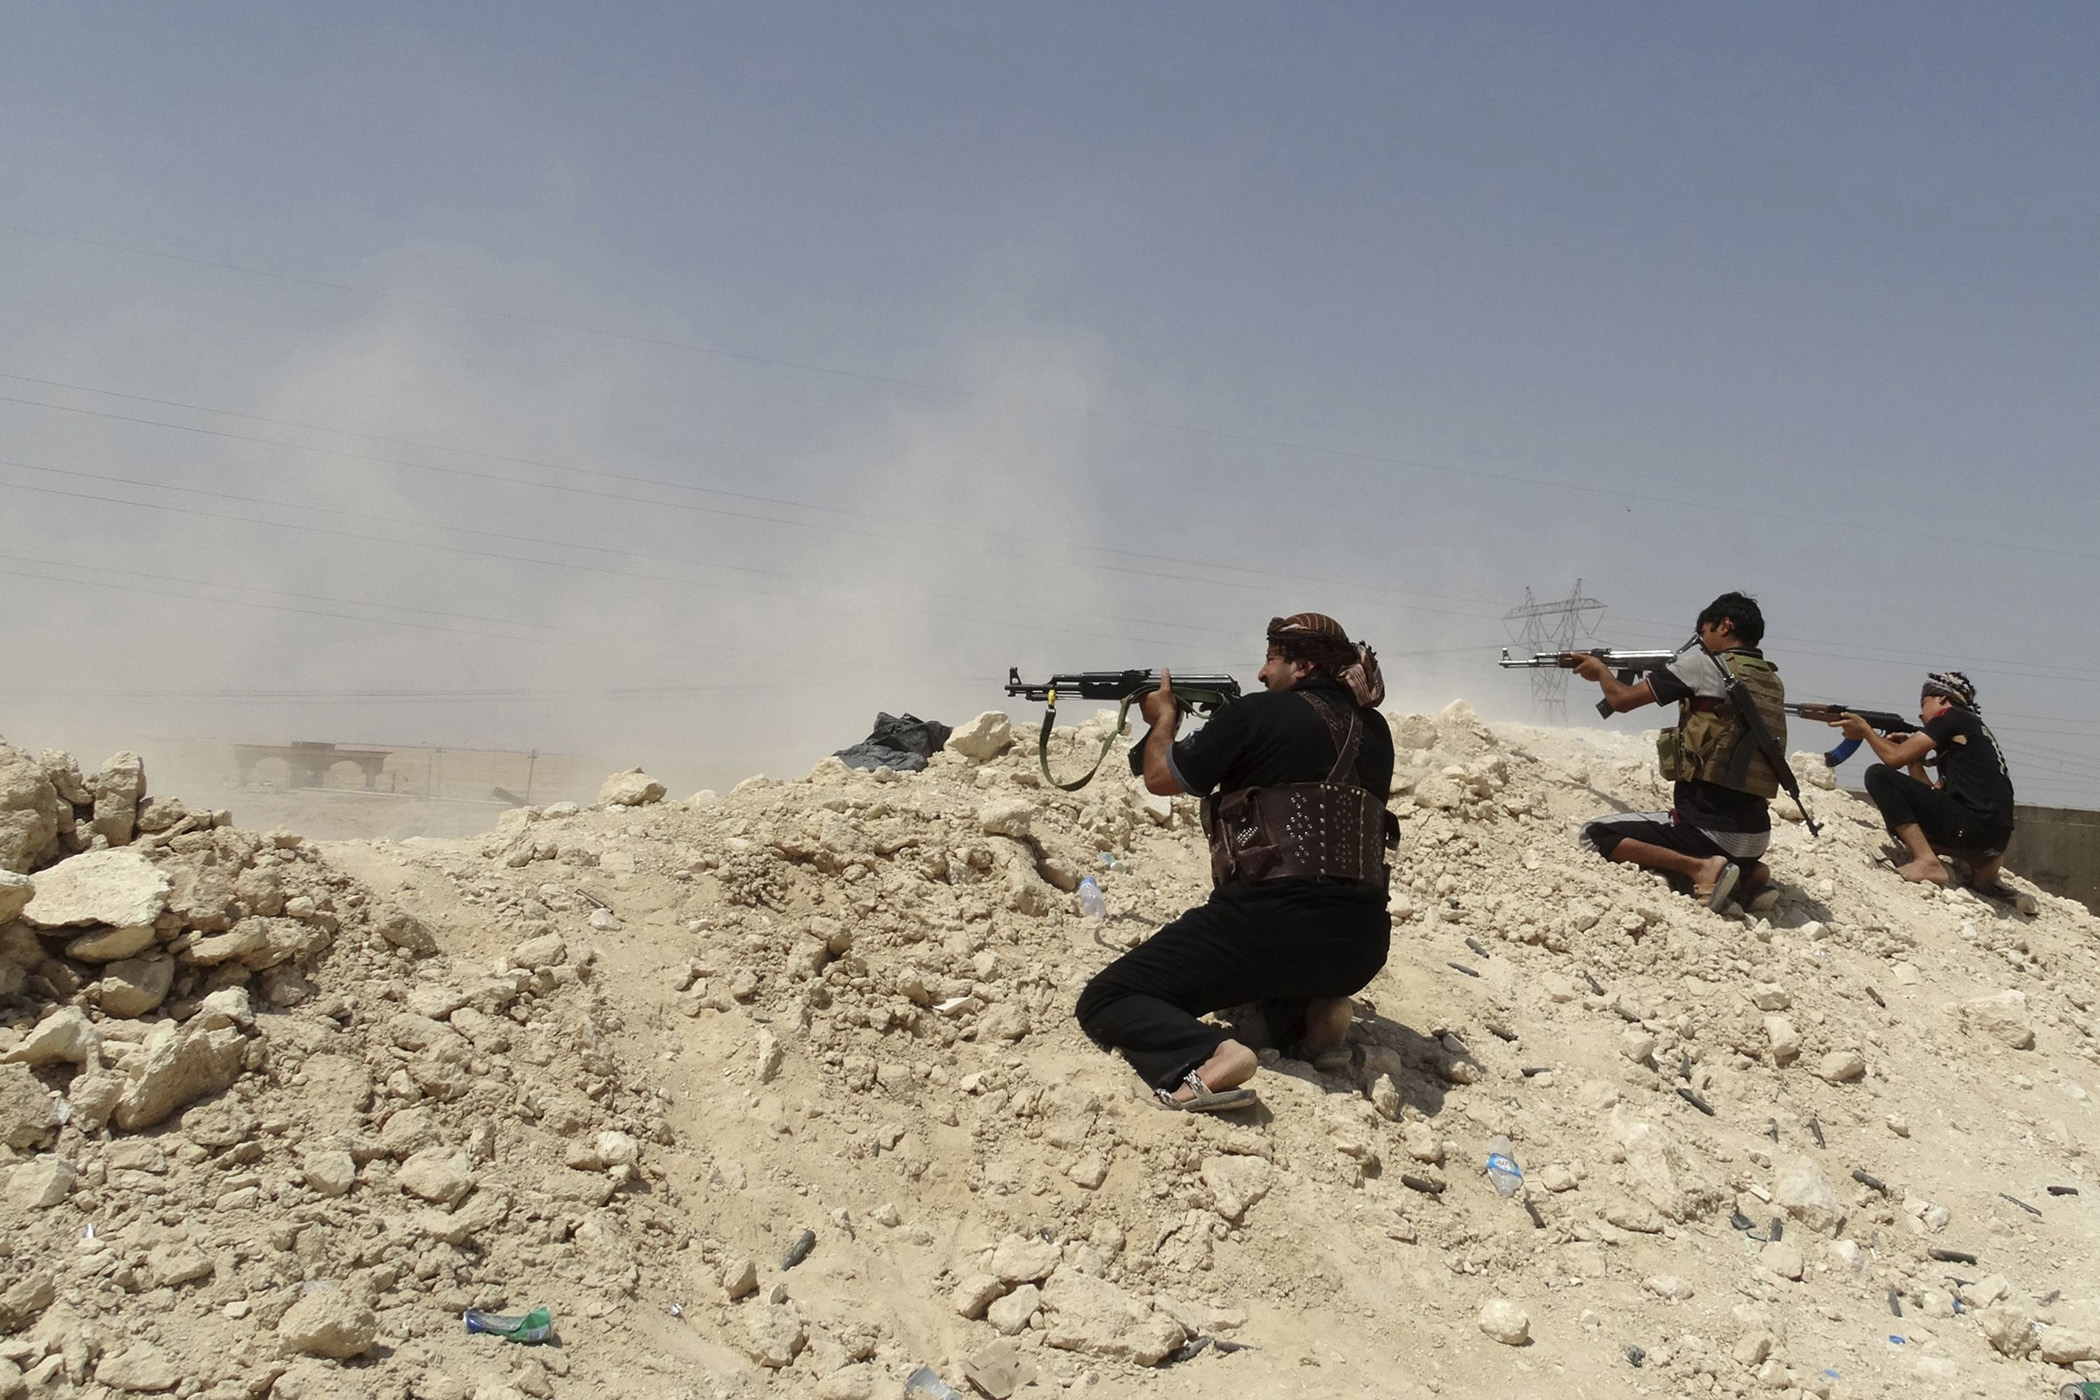 Tribal fighters seen during a battle with ISIS militants, in Haditha, Iraq, Aug. 25, 2014.